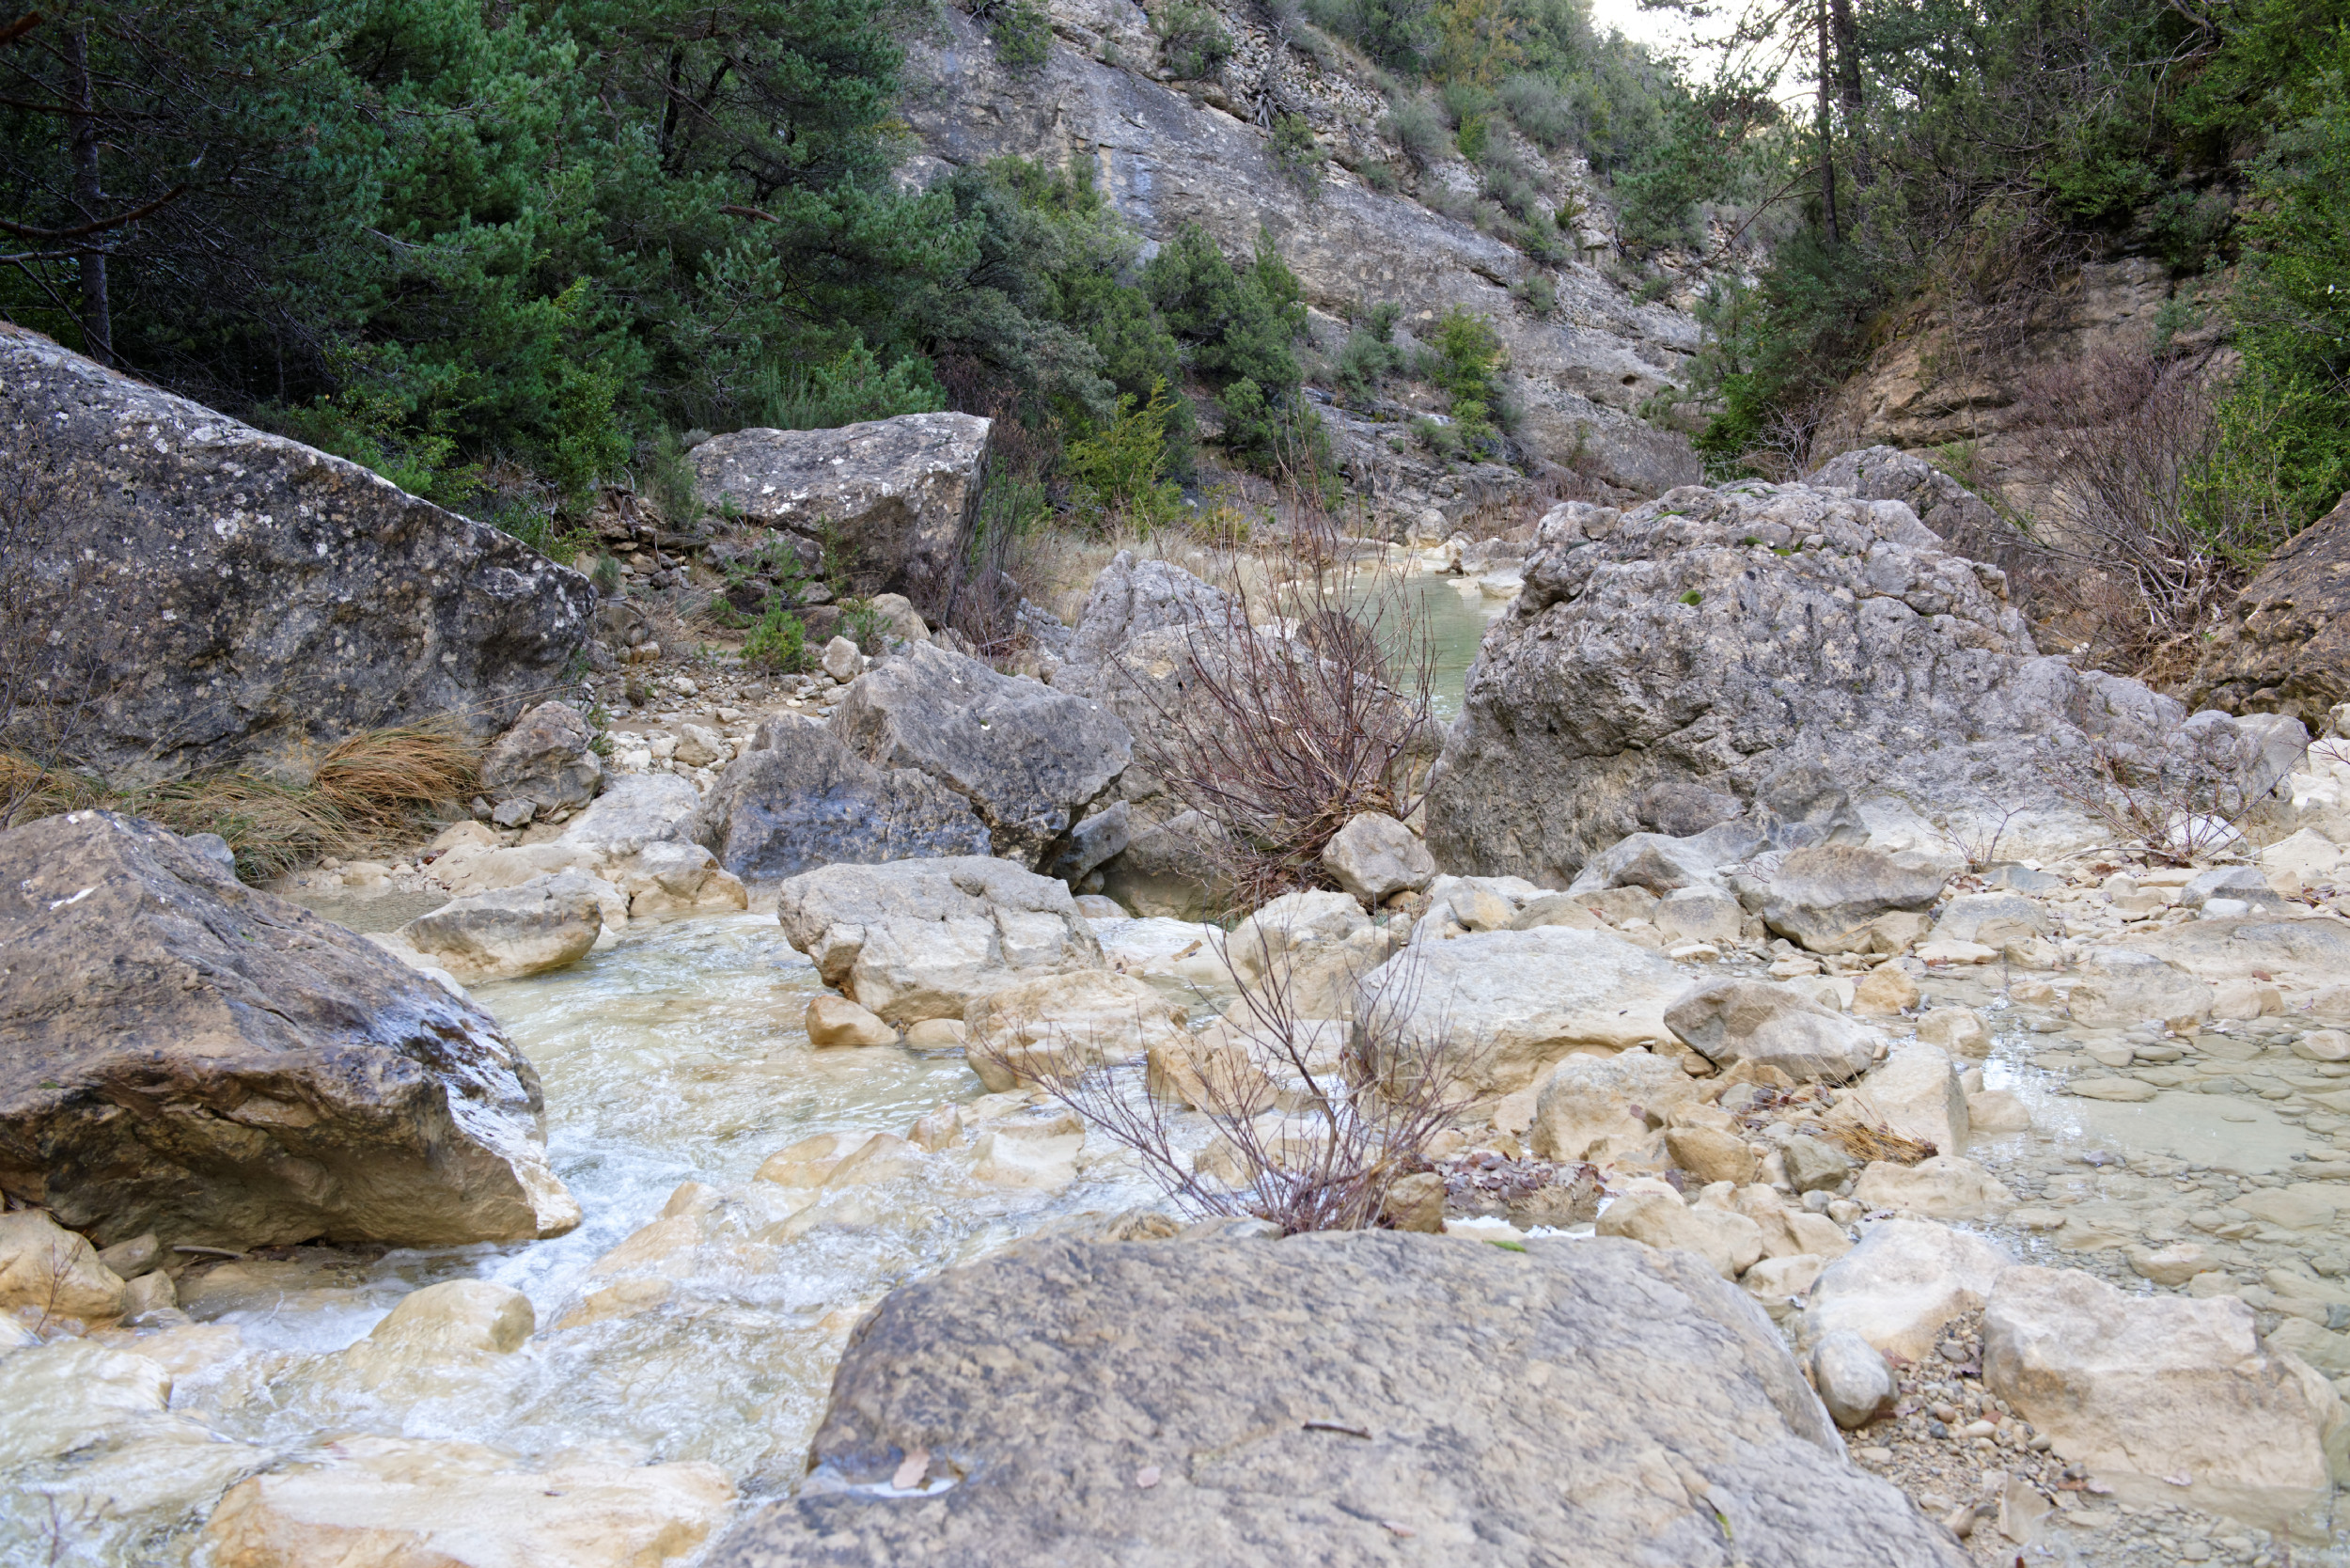 141208-Sieste - Canyon et Barranco (Sobrarbe) (36)